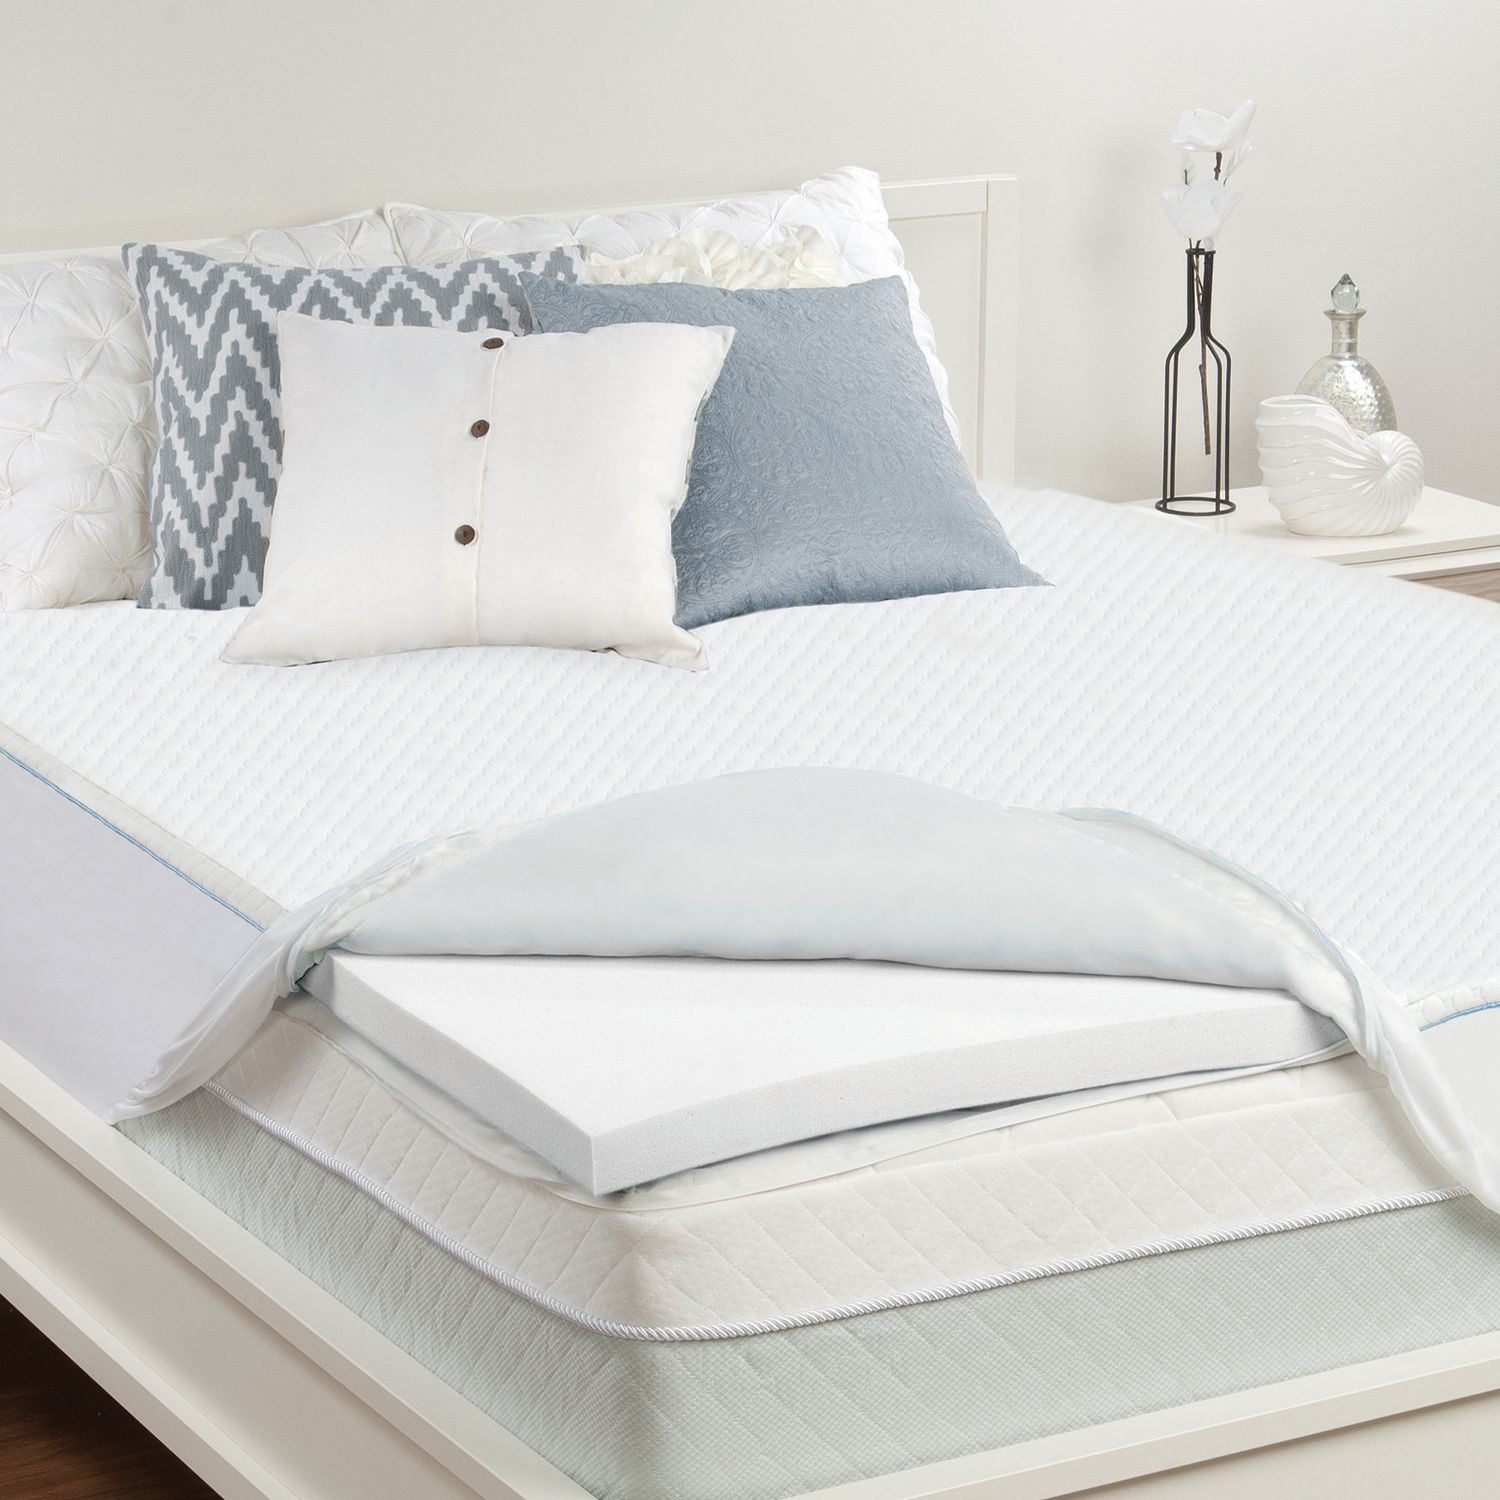 sealy 2inch memory foam deeppocket mattress topper